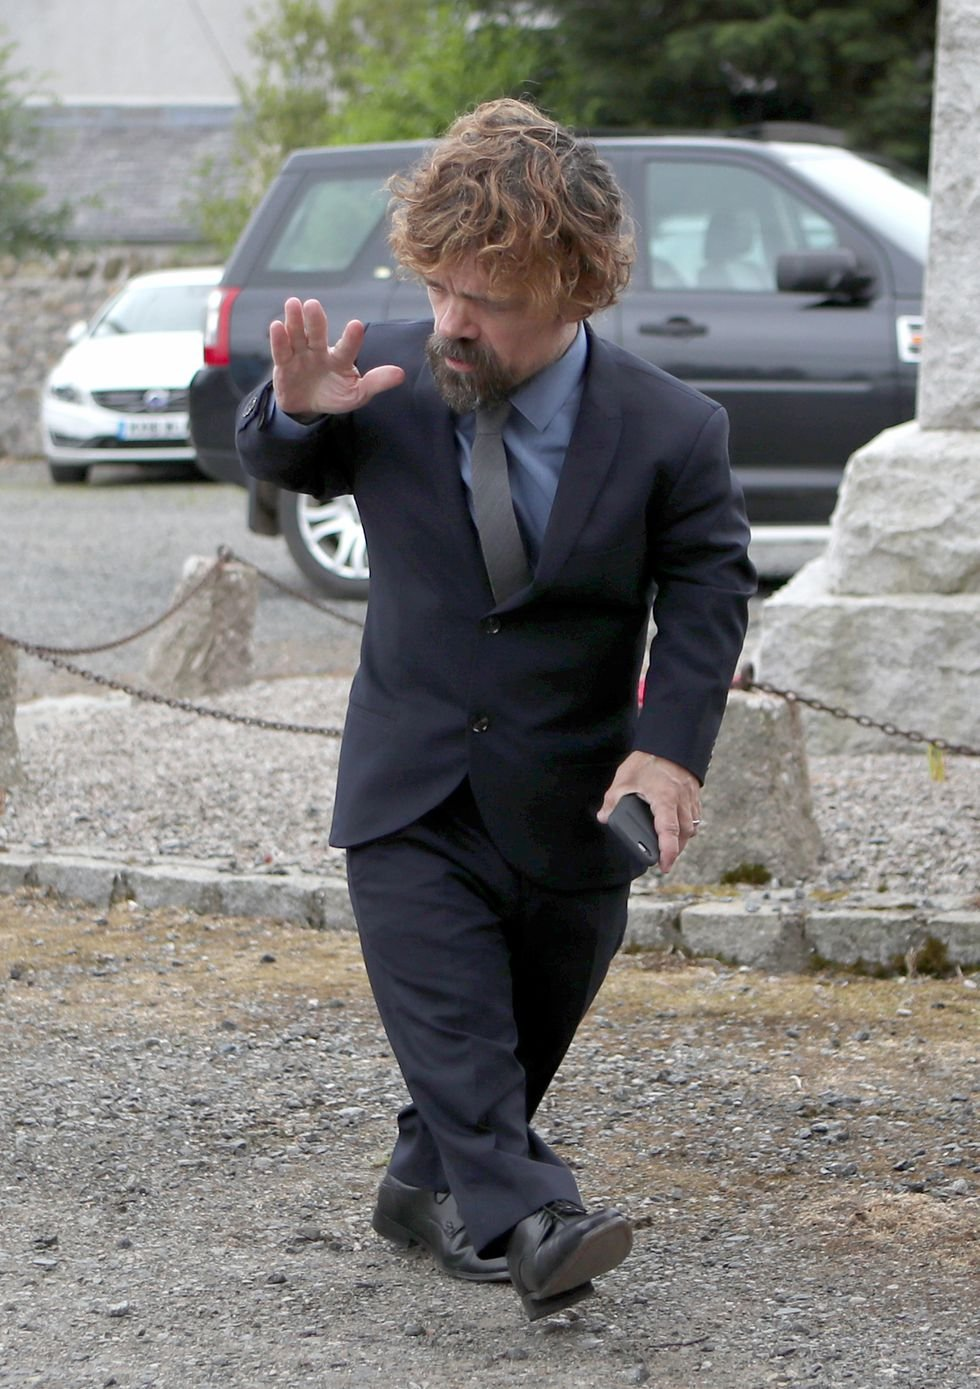 Peter Dinklage looks so darn good here.